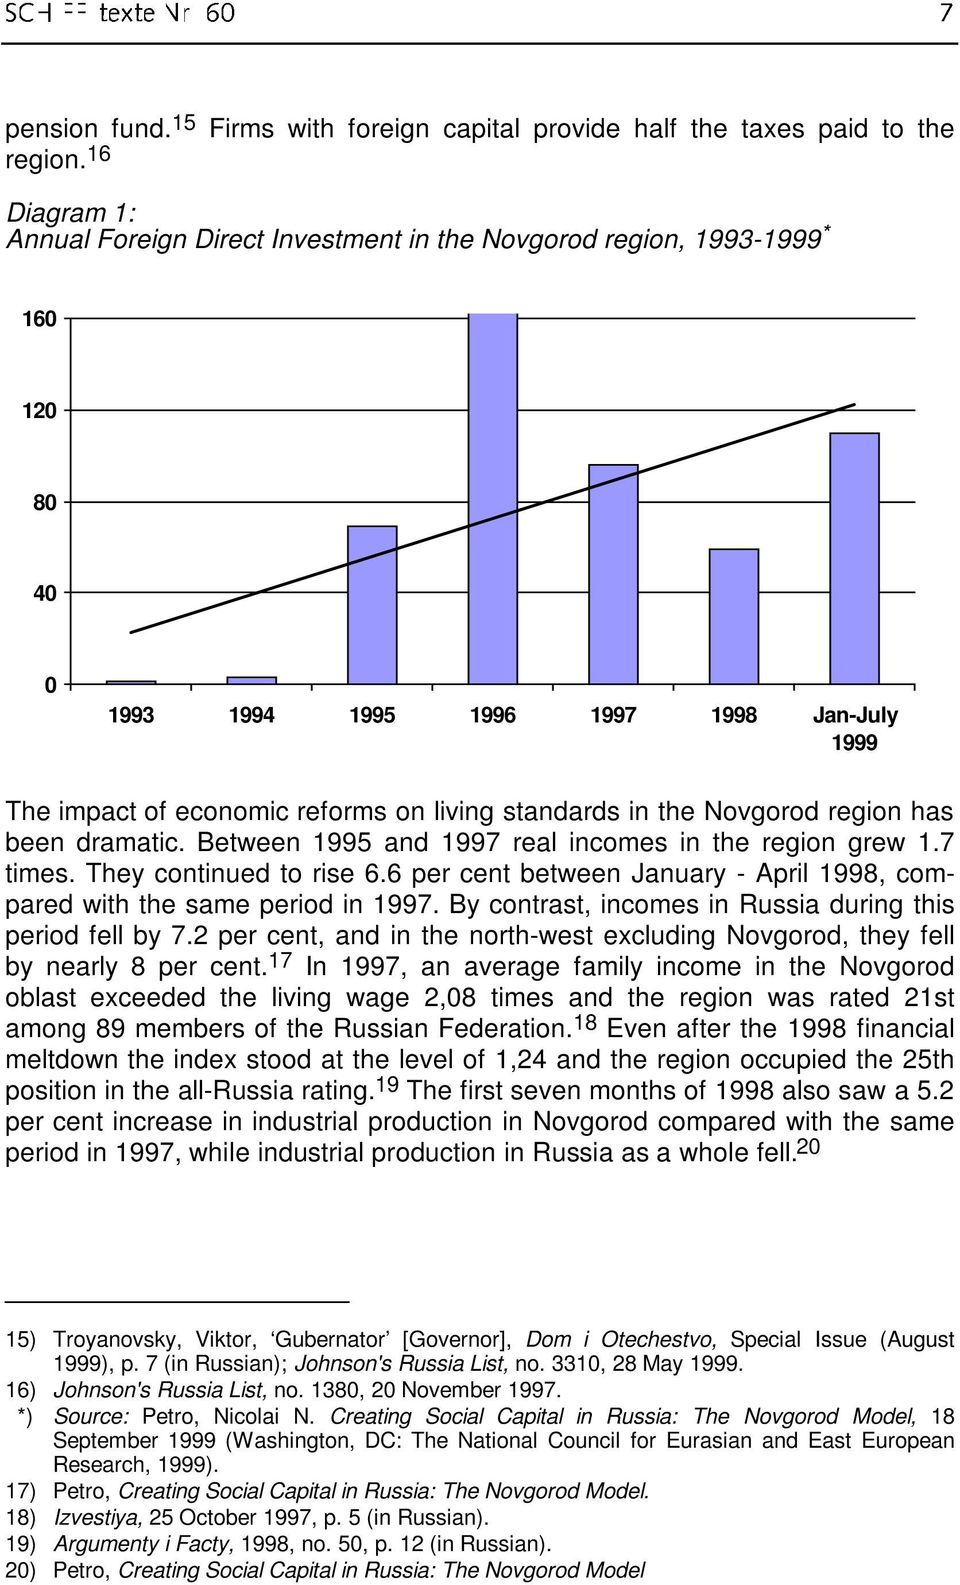 the Novgorod region has been dramatic. Between 1995 and 1997 real incomes in the region grew 1.7 times. They continued to rise 6.